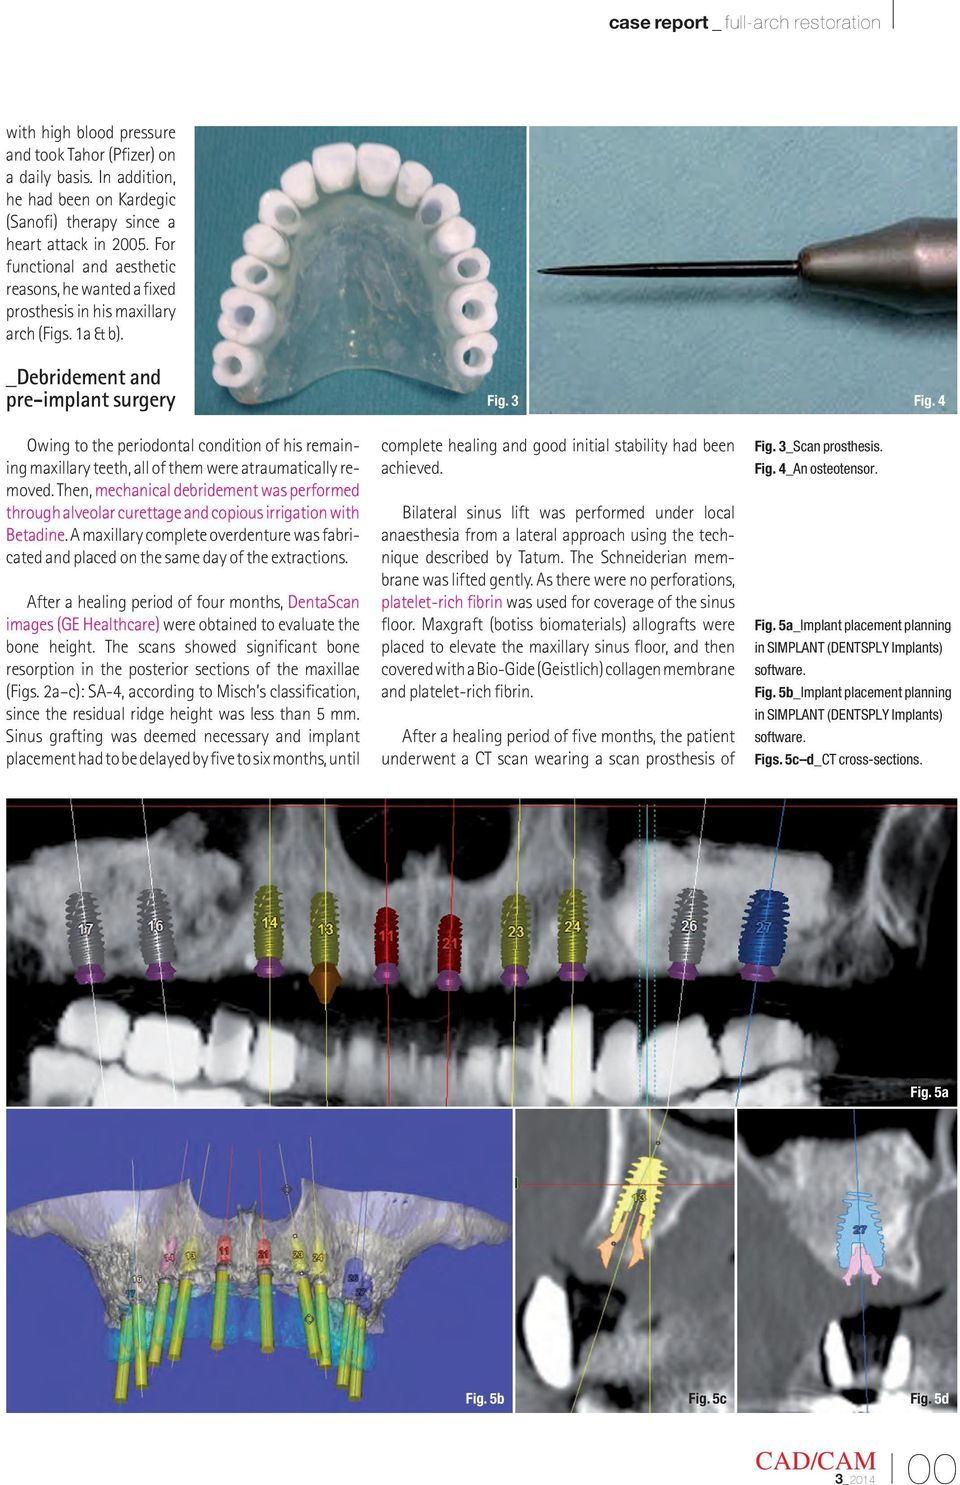 _Debridement and pre-implant surgery Owing to the periodontal condition of his remaining maxillary teeth, all of them were atraumatically removed.